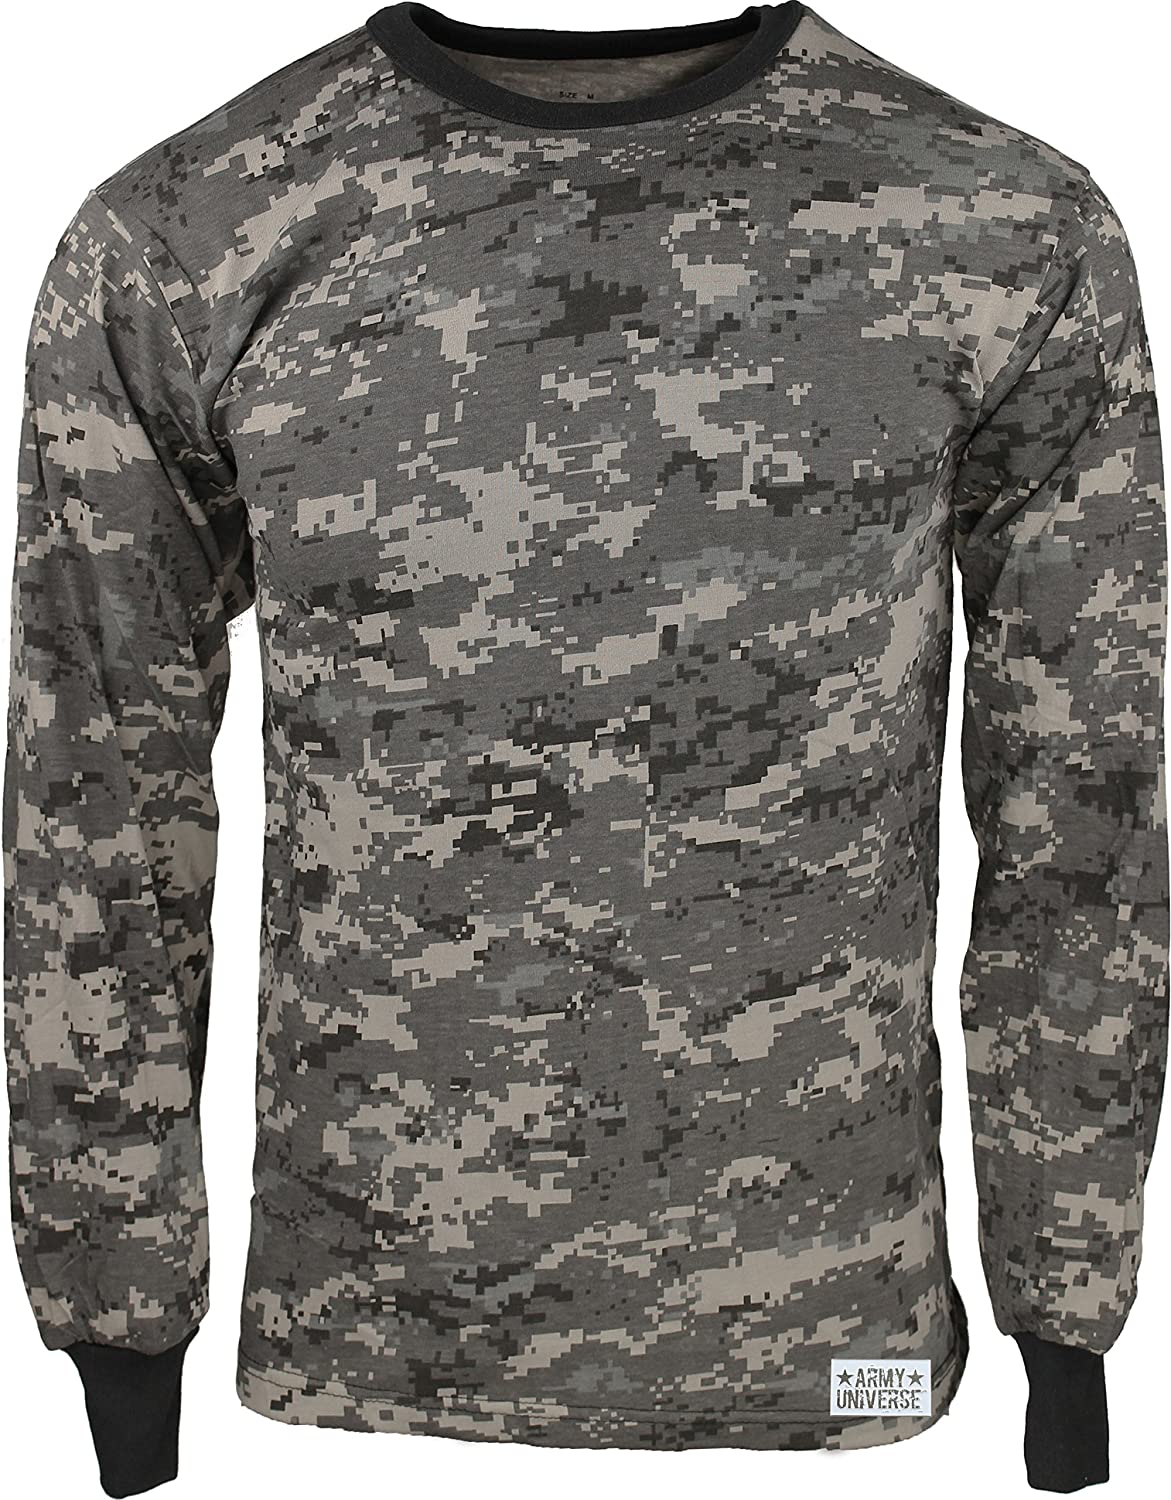 Amazon.com  Military Camouflage Long Sleeve T-Shirt Camo Army Tee With  ArmyUniverse Pin  Clothing 0746edcc9